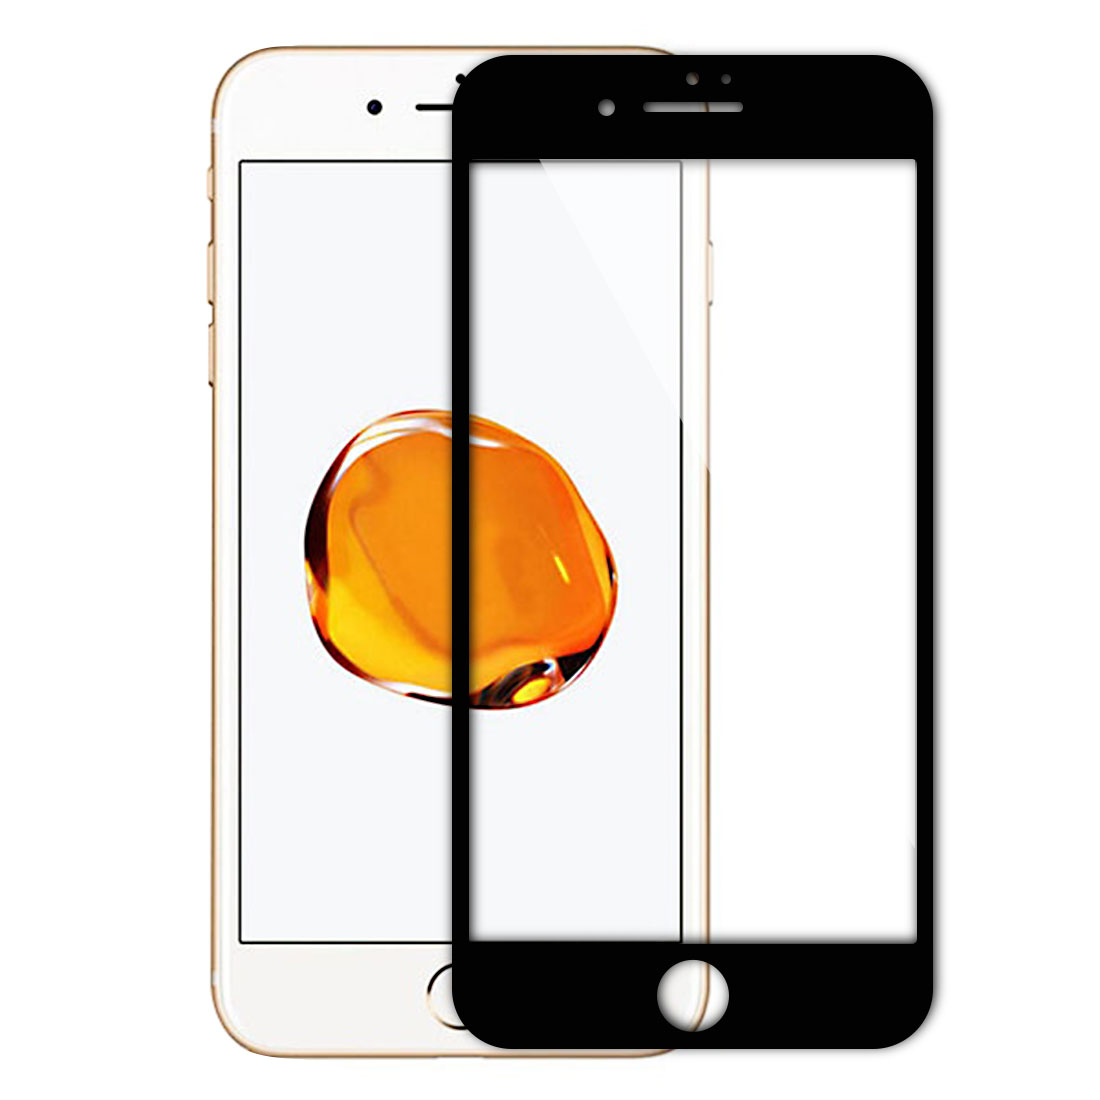 Phone Tempered Glass 9H Hardness 3D Round Screen Protector Black for iPhone 7 Plus